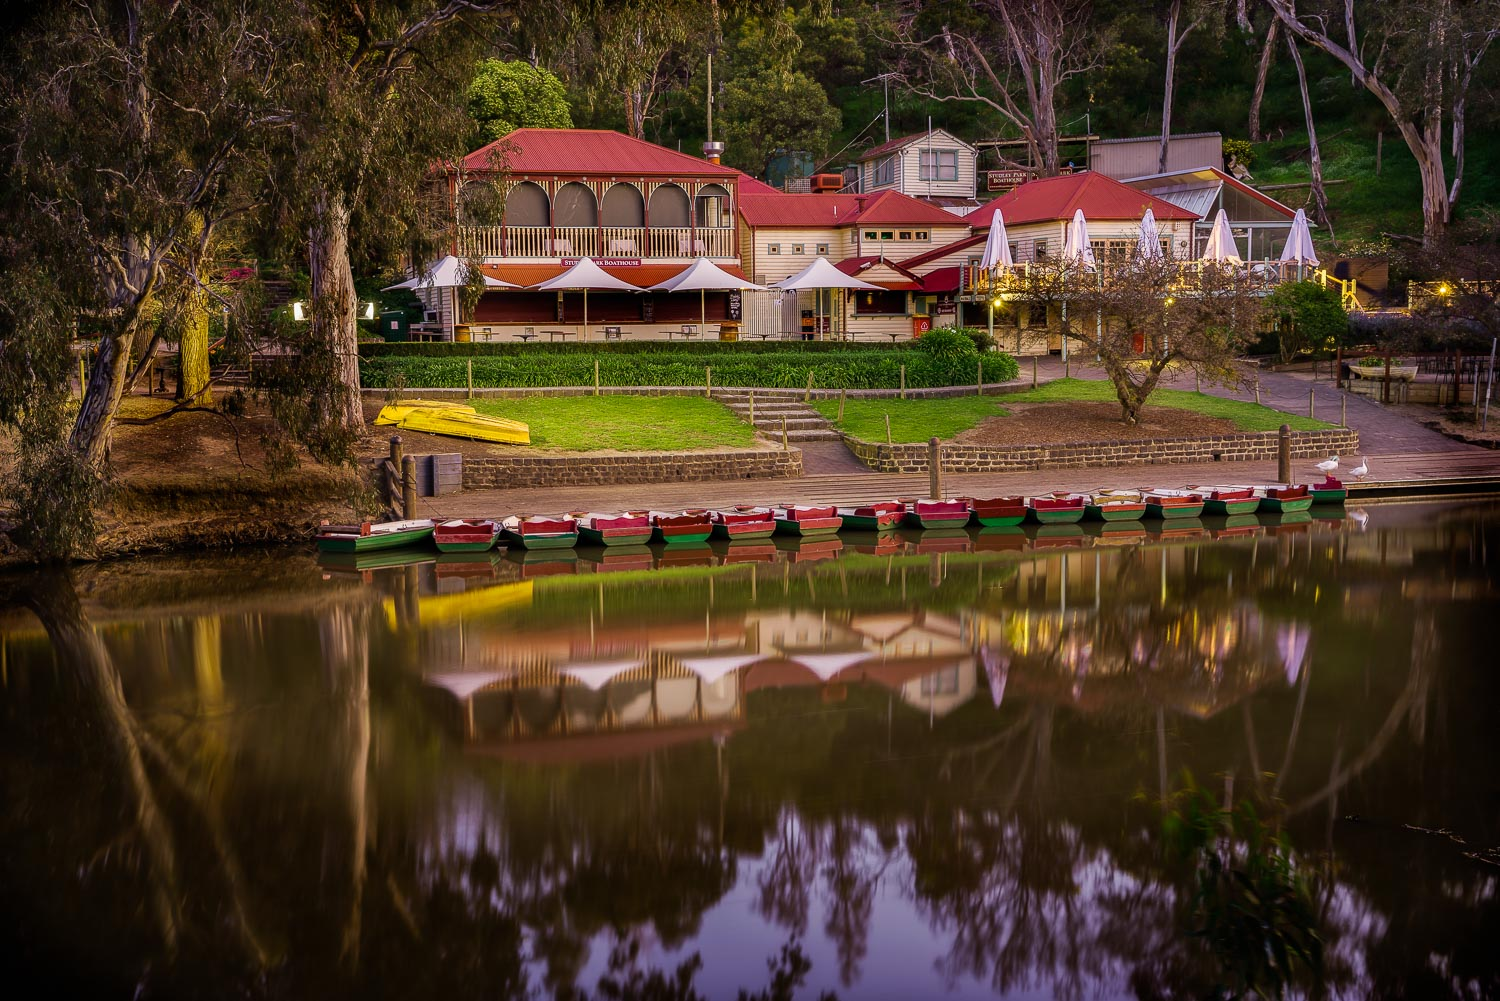 Days end at the lovely  Studley Park Boathouse  in  Kew , a suburb of Melbourne, Australia.